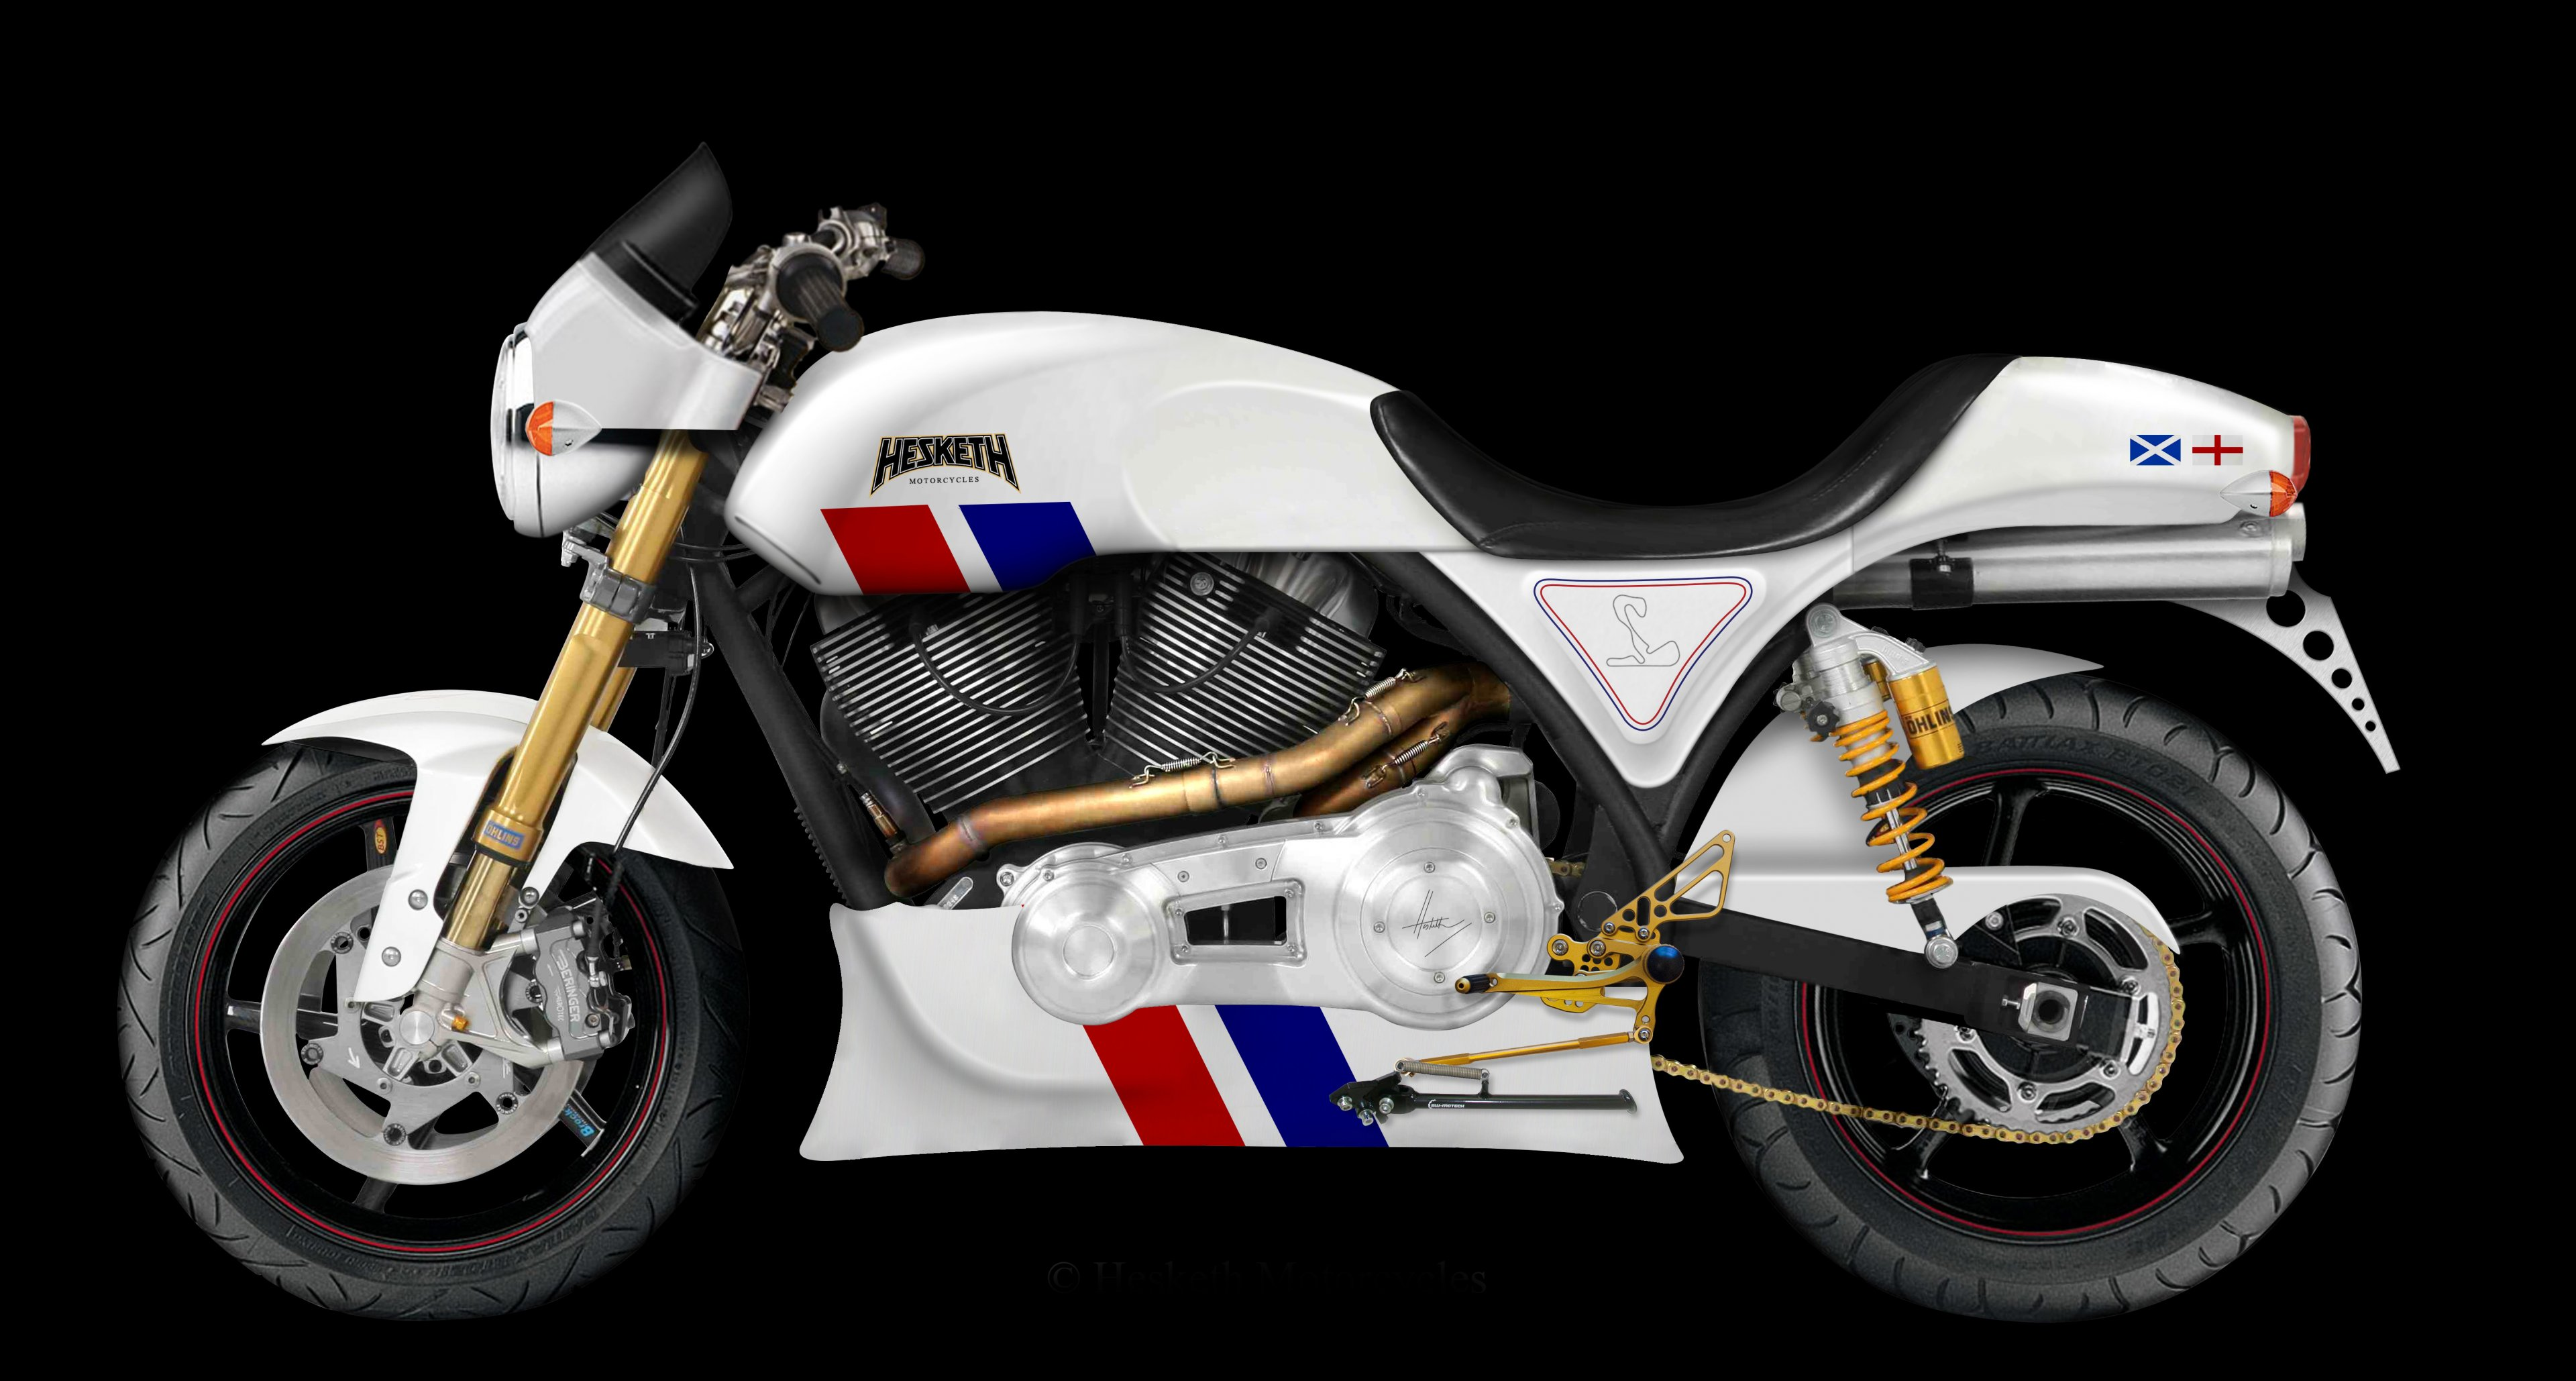 Hesketh Motorcycle's new '24', with styling inspired by James Hunt's Grand Prix-winning car